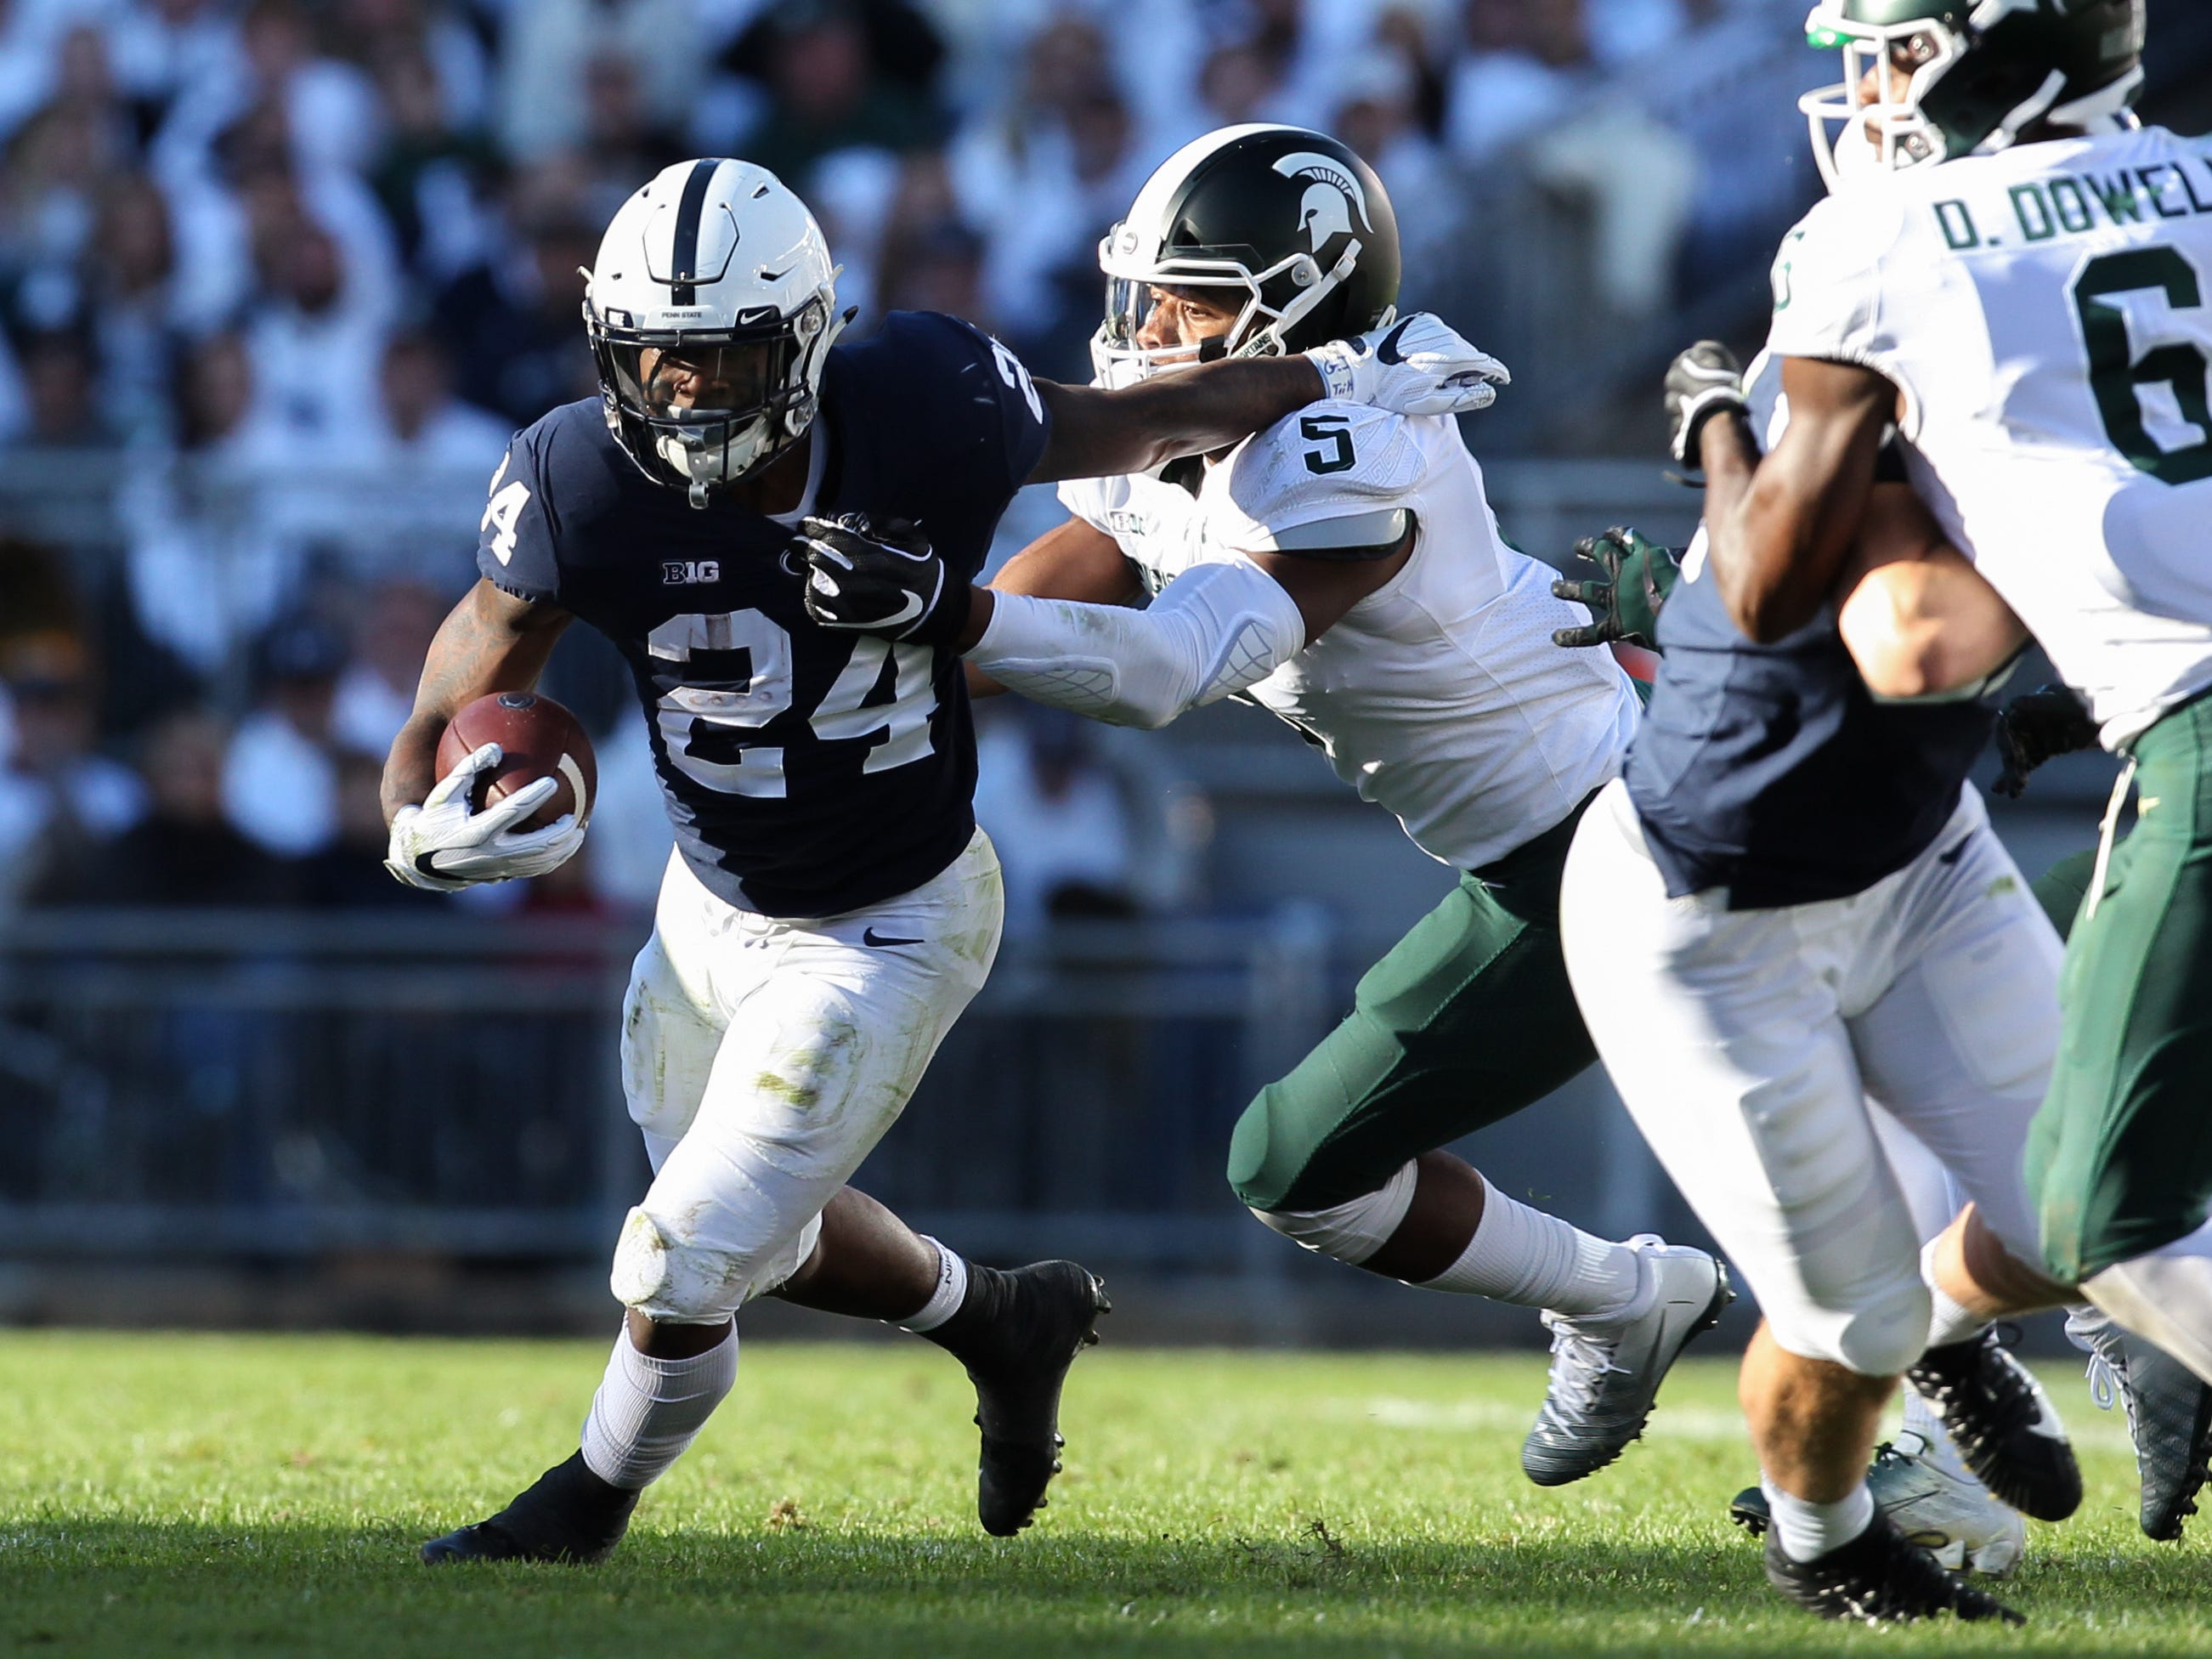 Penn State Nittany Lions running back Miles Sanders (24) runs with the ball while trying to avoid a tackle from Michigan State Spartans linebacker Andrew Dowell (5) during the second quarter at Beaver Stadium. Mandatory Credit: